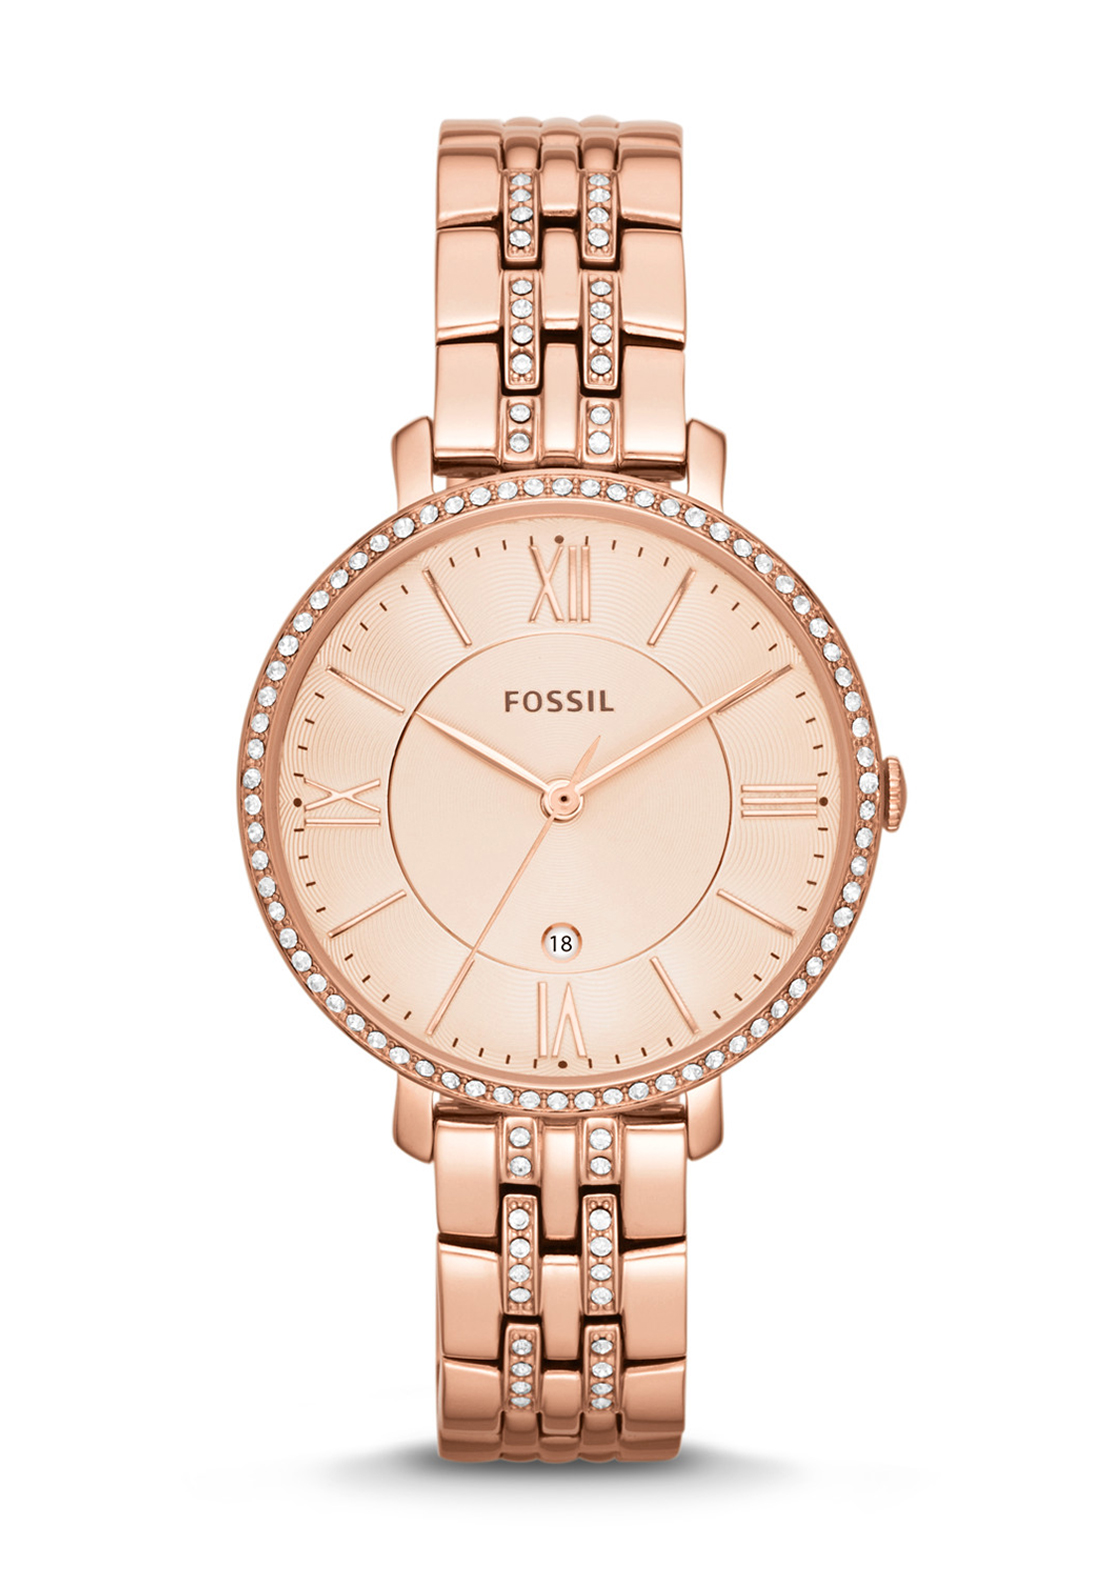 Fossil Womens Jacqueline Watch, Rose Gold